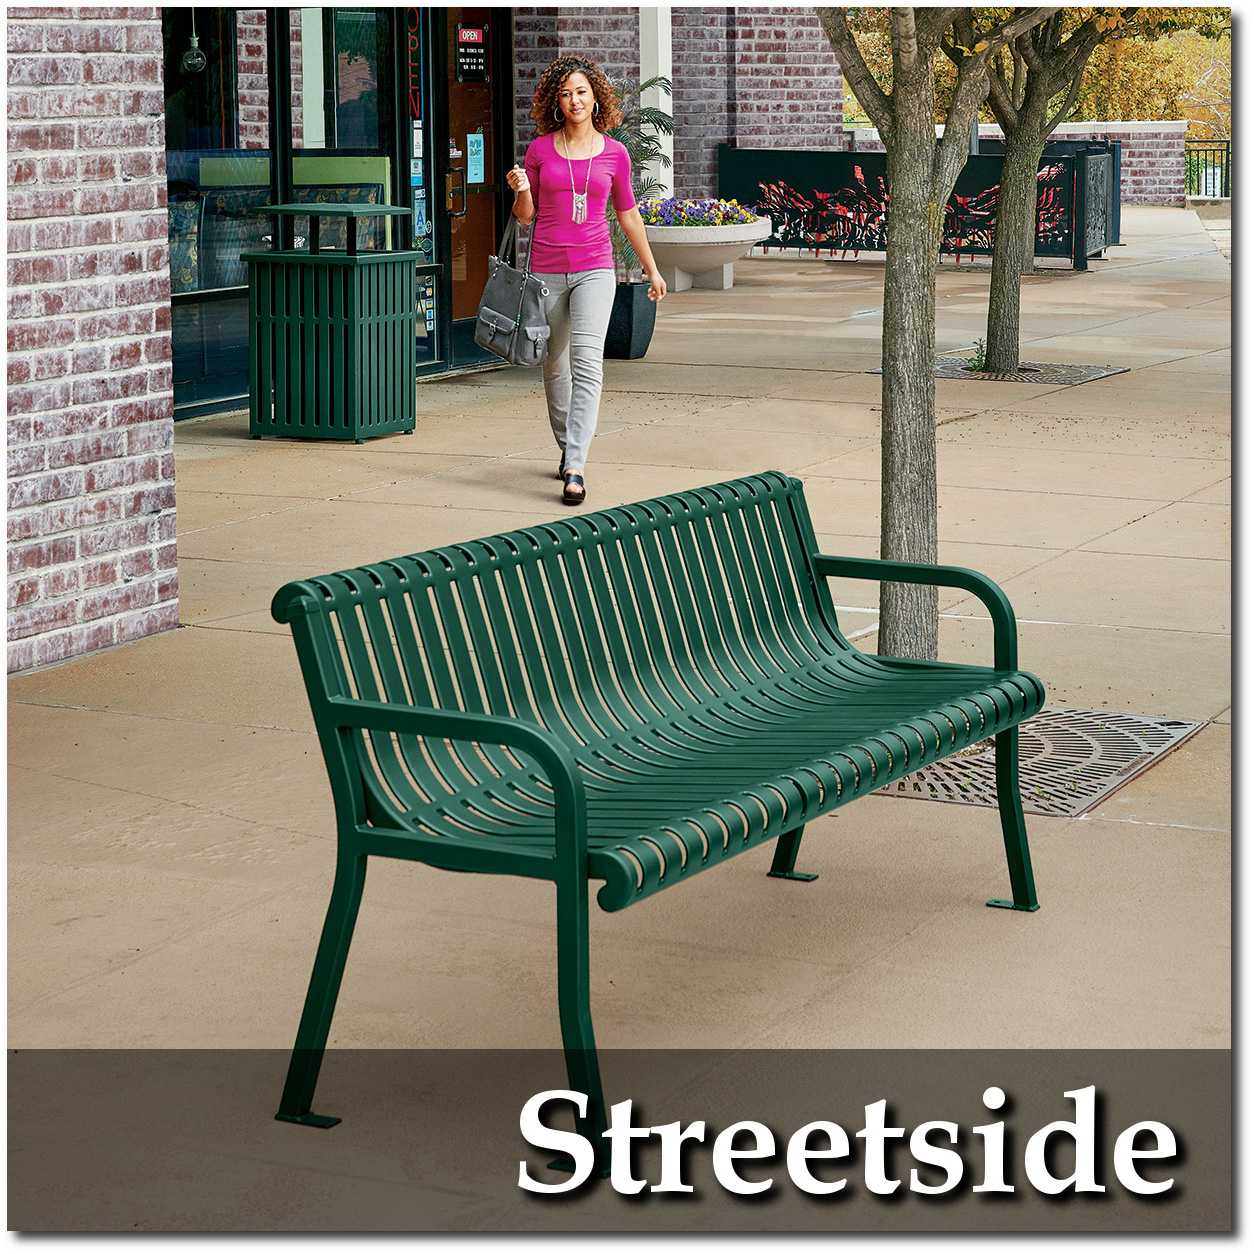 Streetside Park Benches